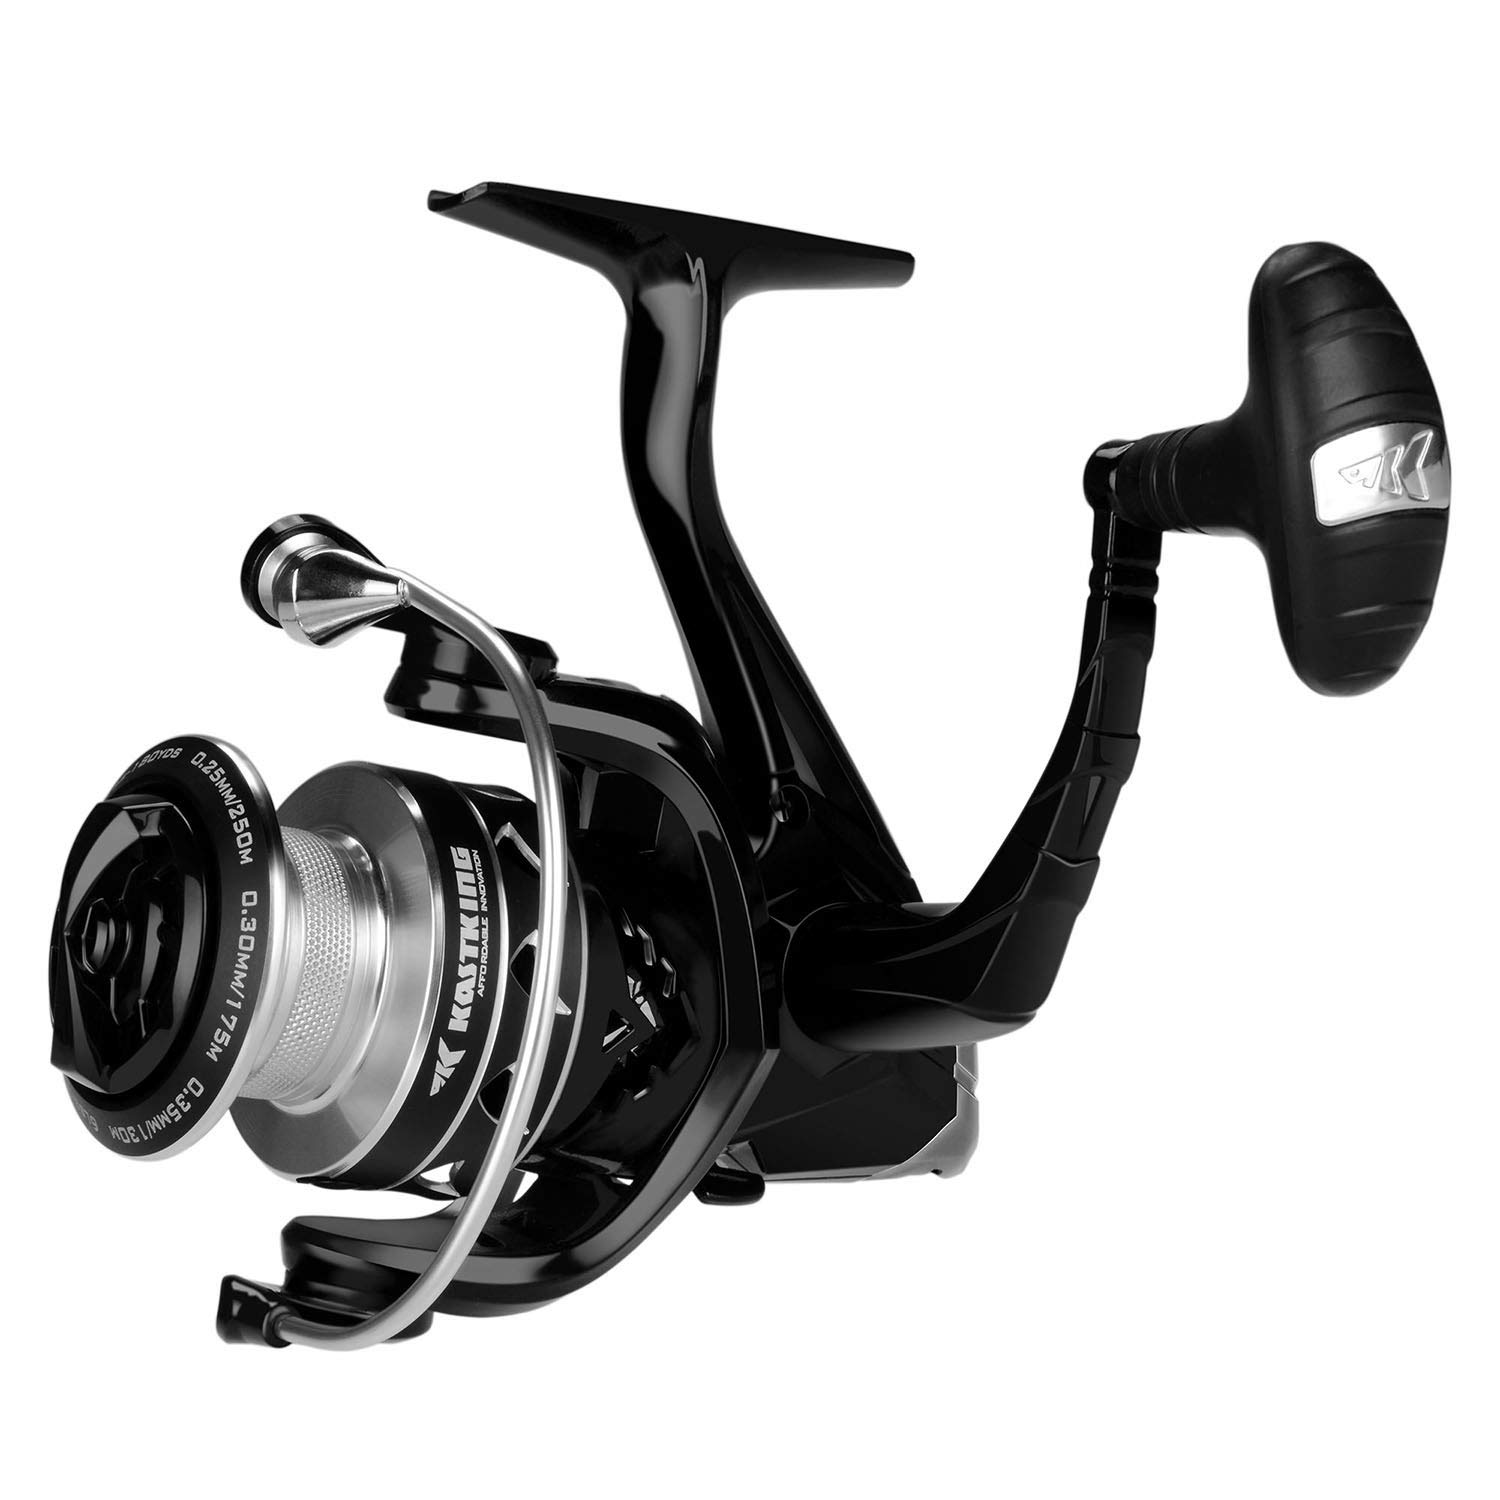 KastKing Valiant Eagle Spinning Fishing Reel, 6.2 1 Gear Ratio, Up to 22 Lb Drag, Carbon Fiber Frame Rotor, 10 1 High Performance BB.